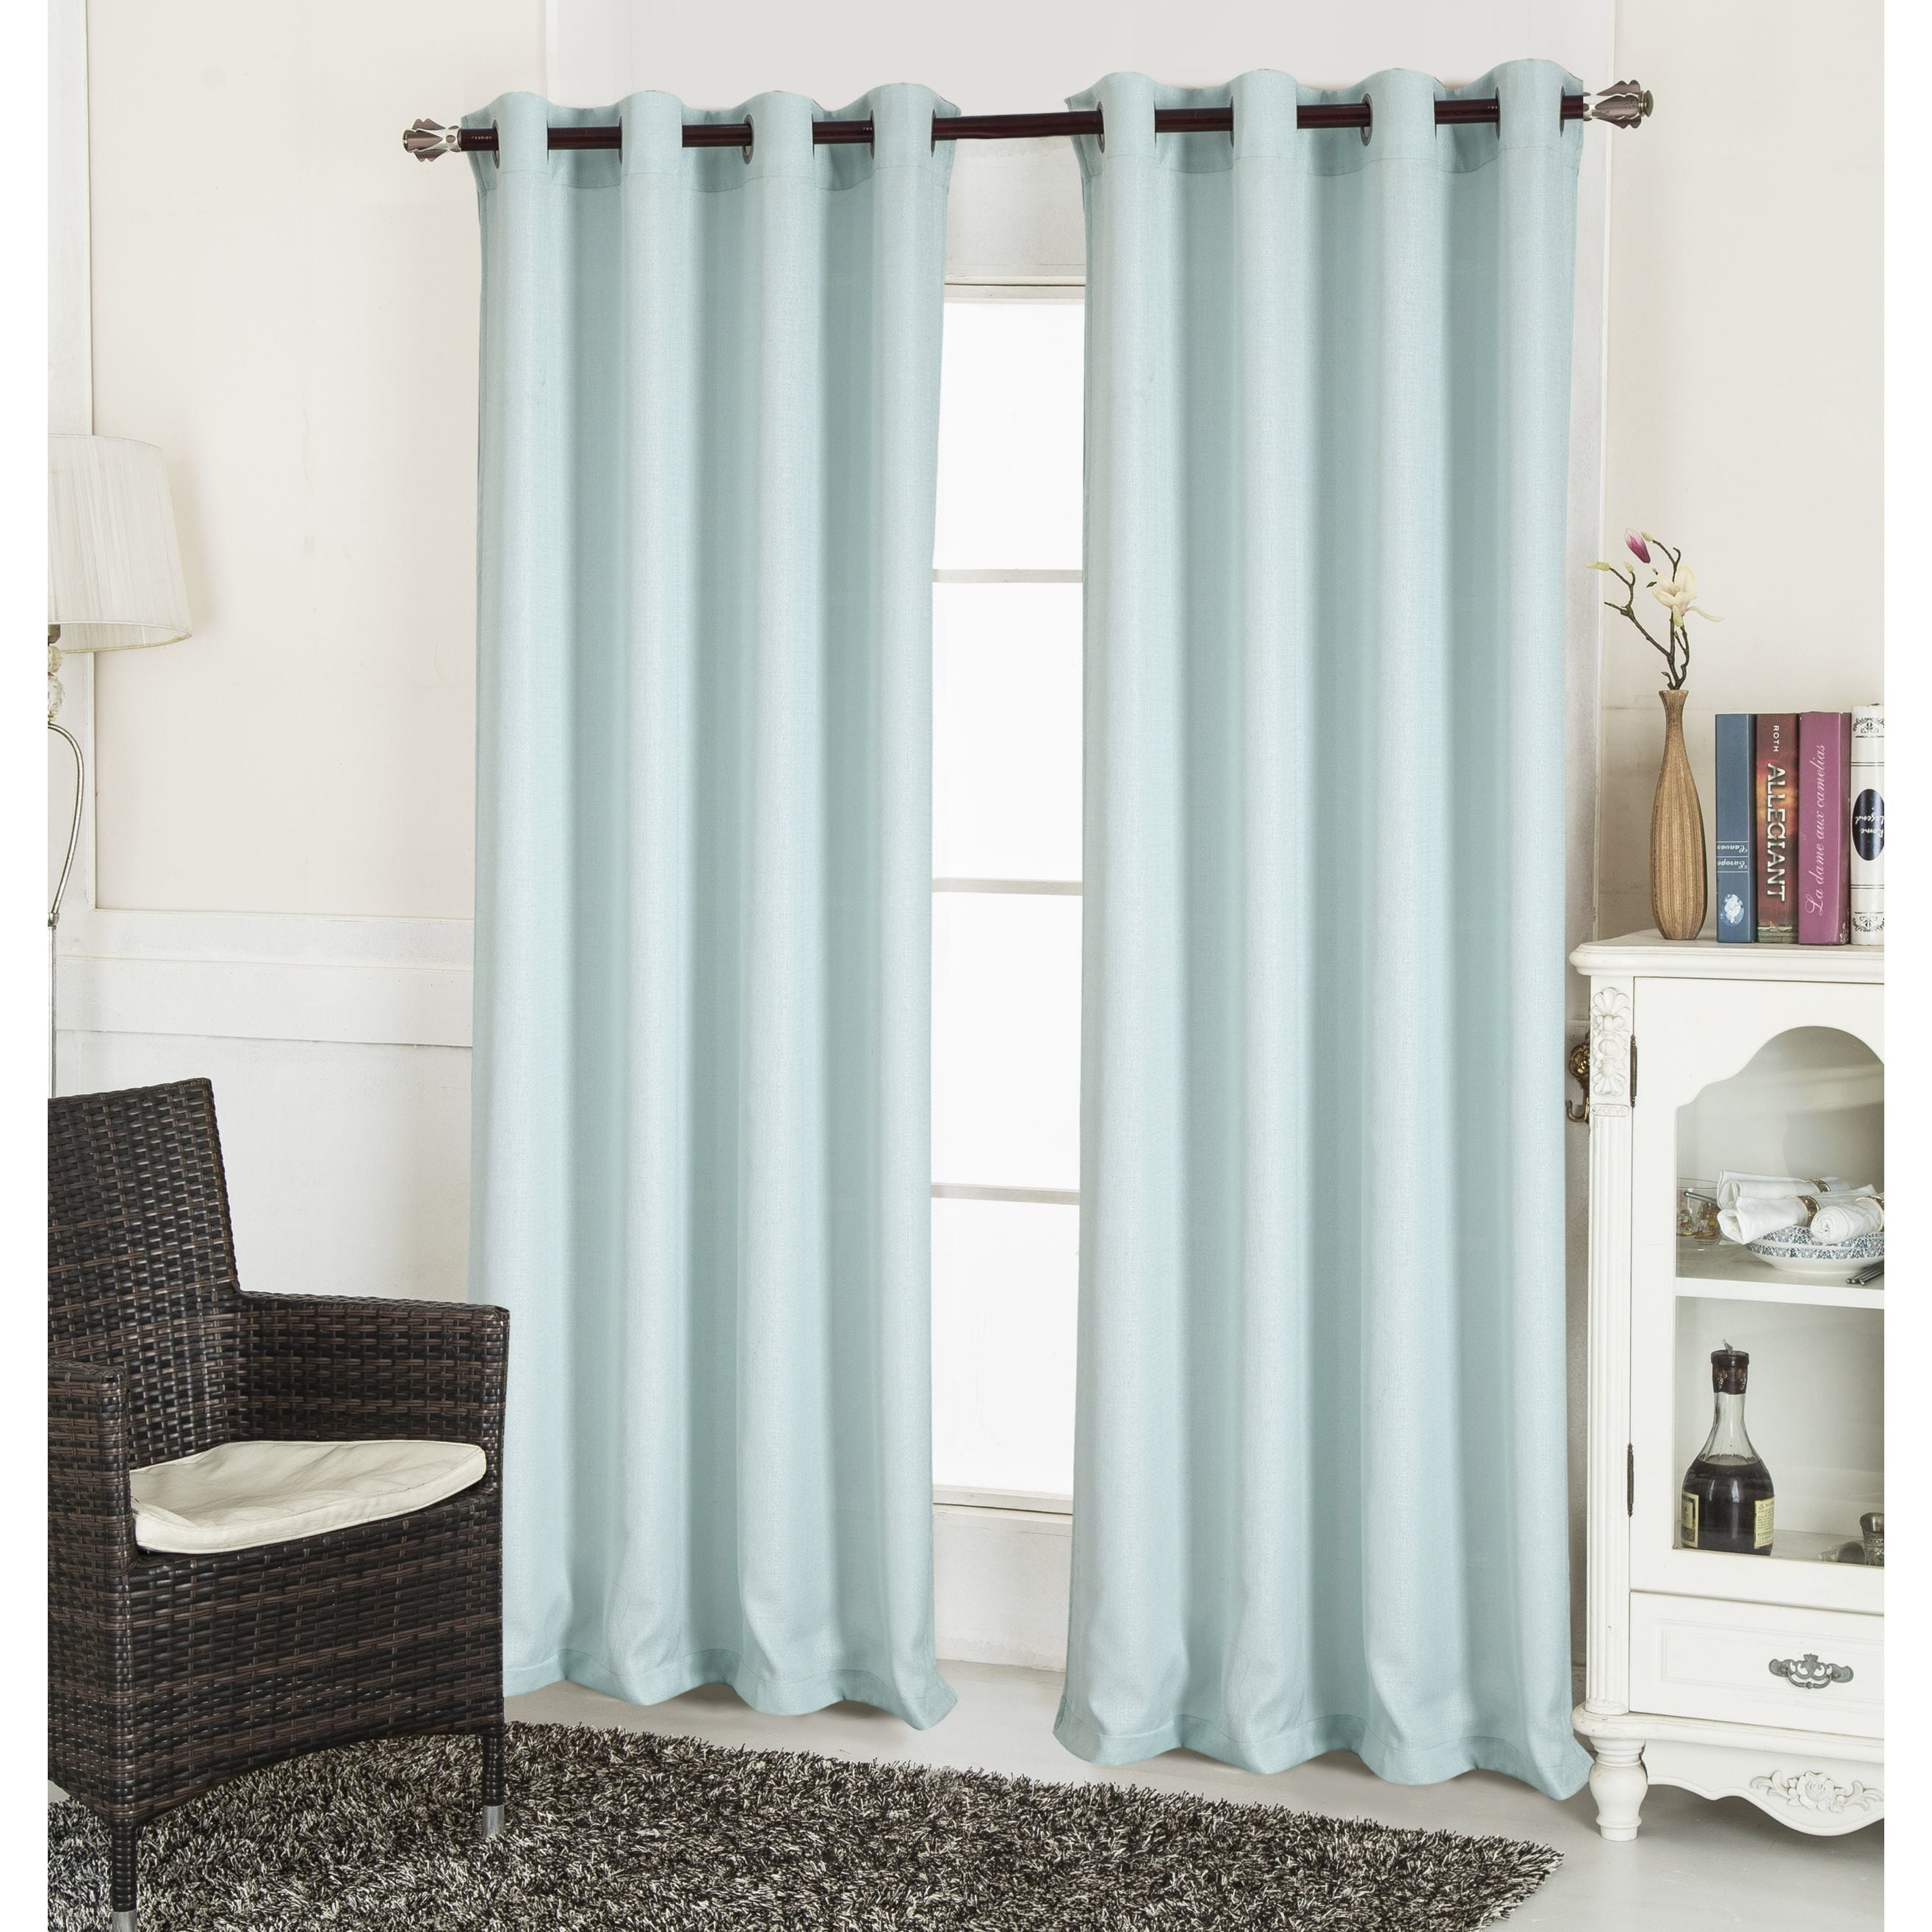 info hrcouncil drapes curtains blue dark overstock teal